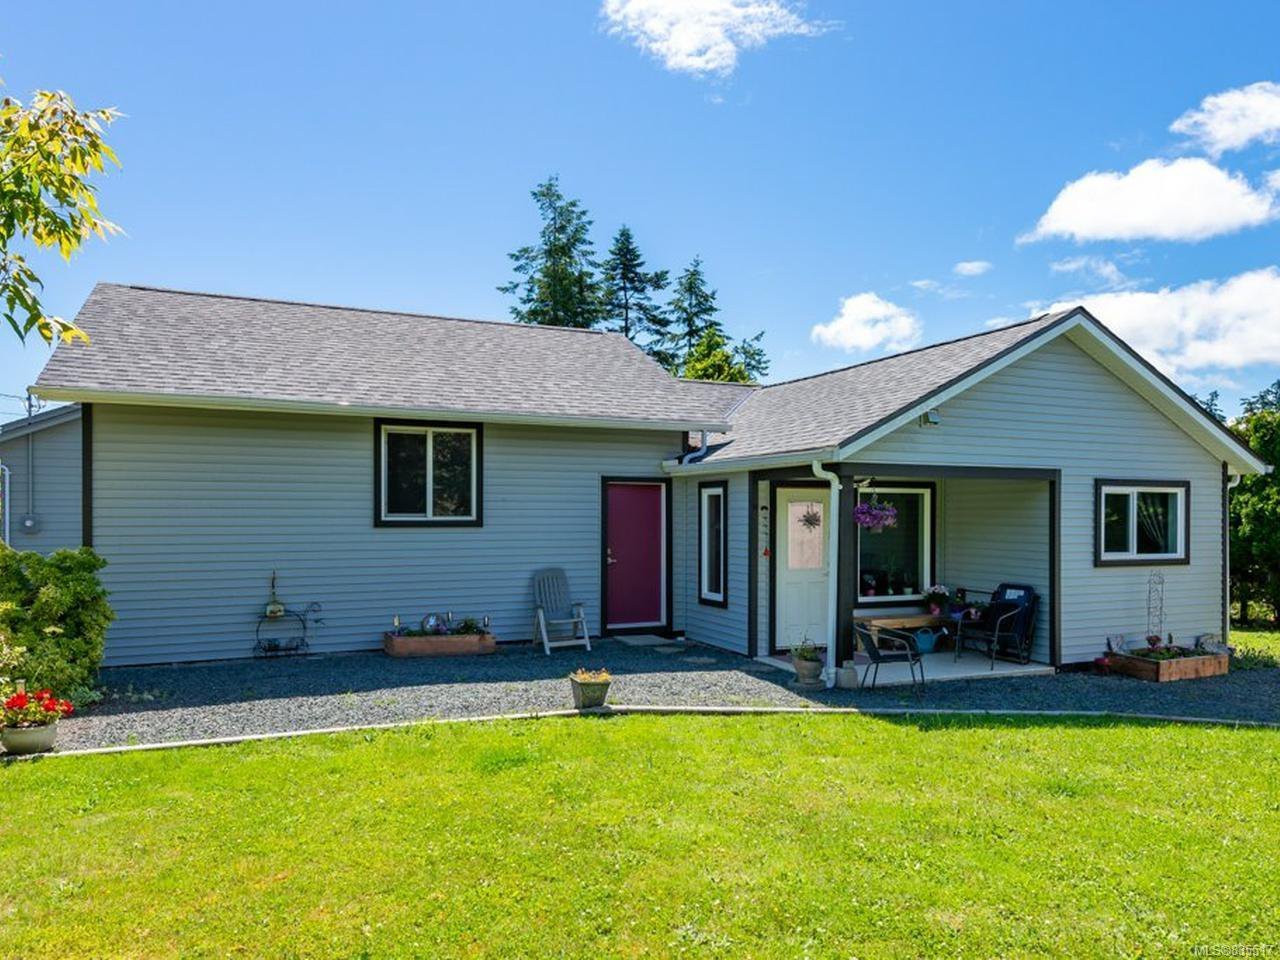 Photo 4: Photos: 109 Larwood Rd in CAMPBELL RIVER: CR Willow Point Single Family Detached for sale (Campbell River)  : MLS®# 835517